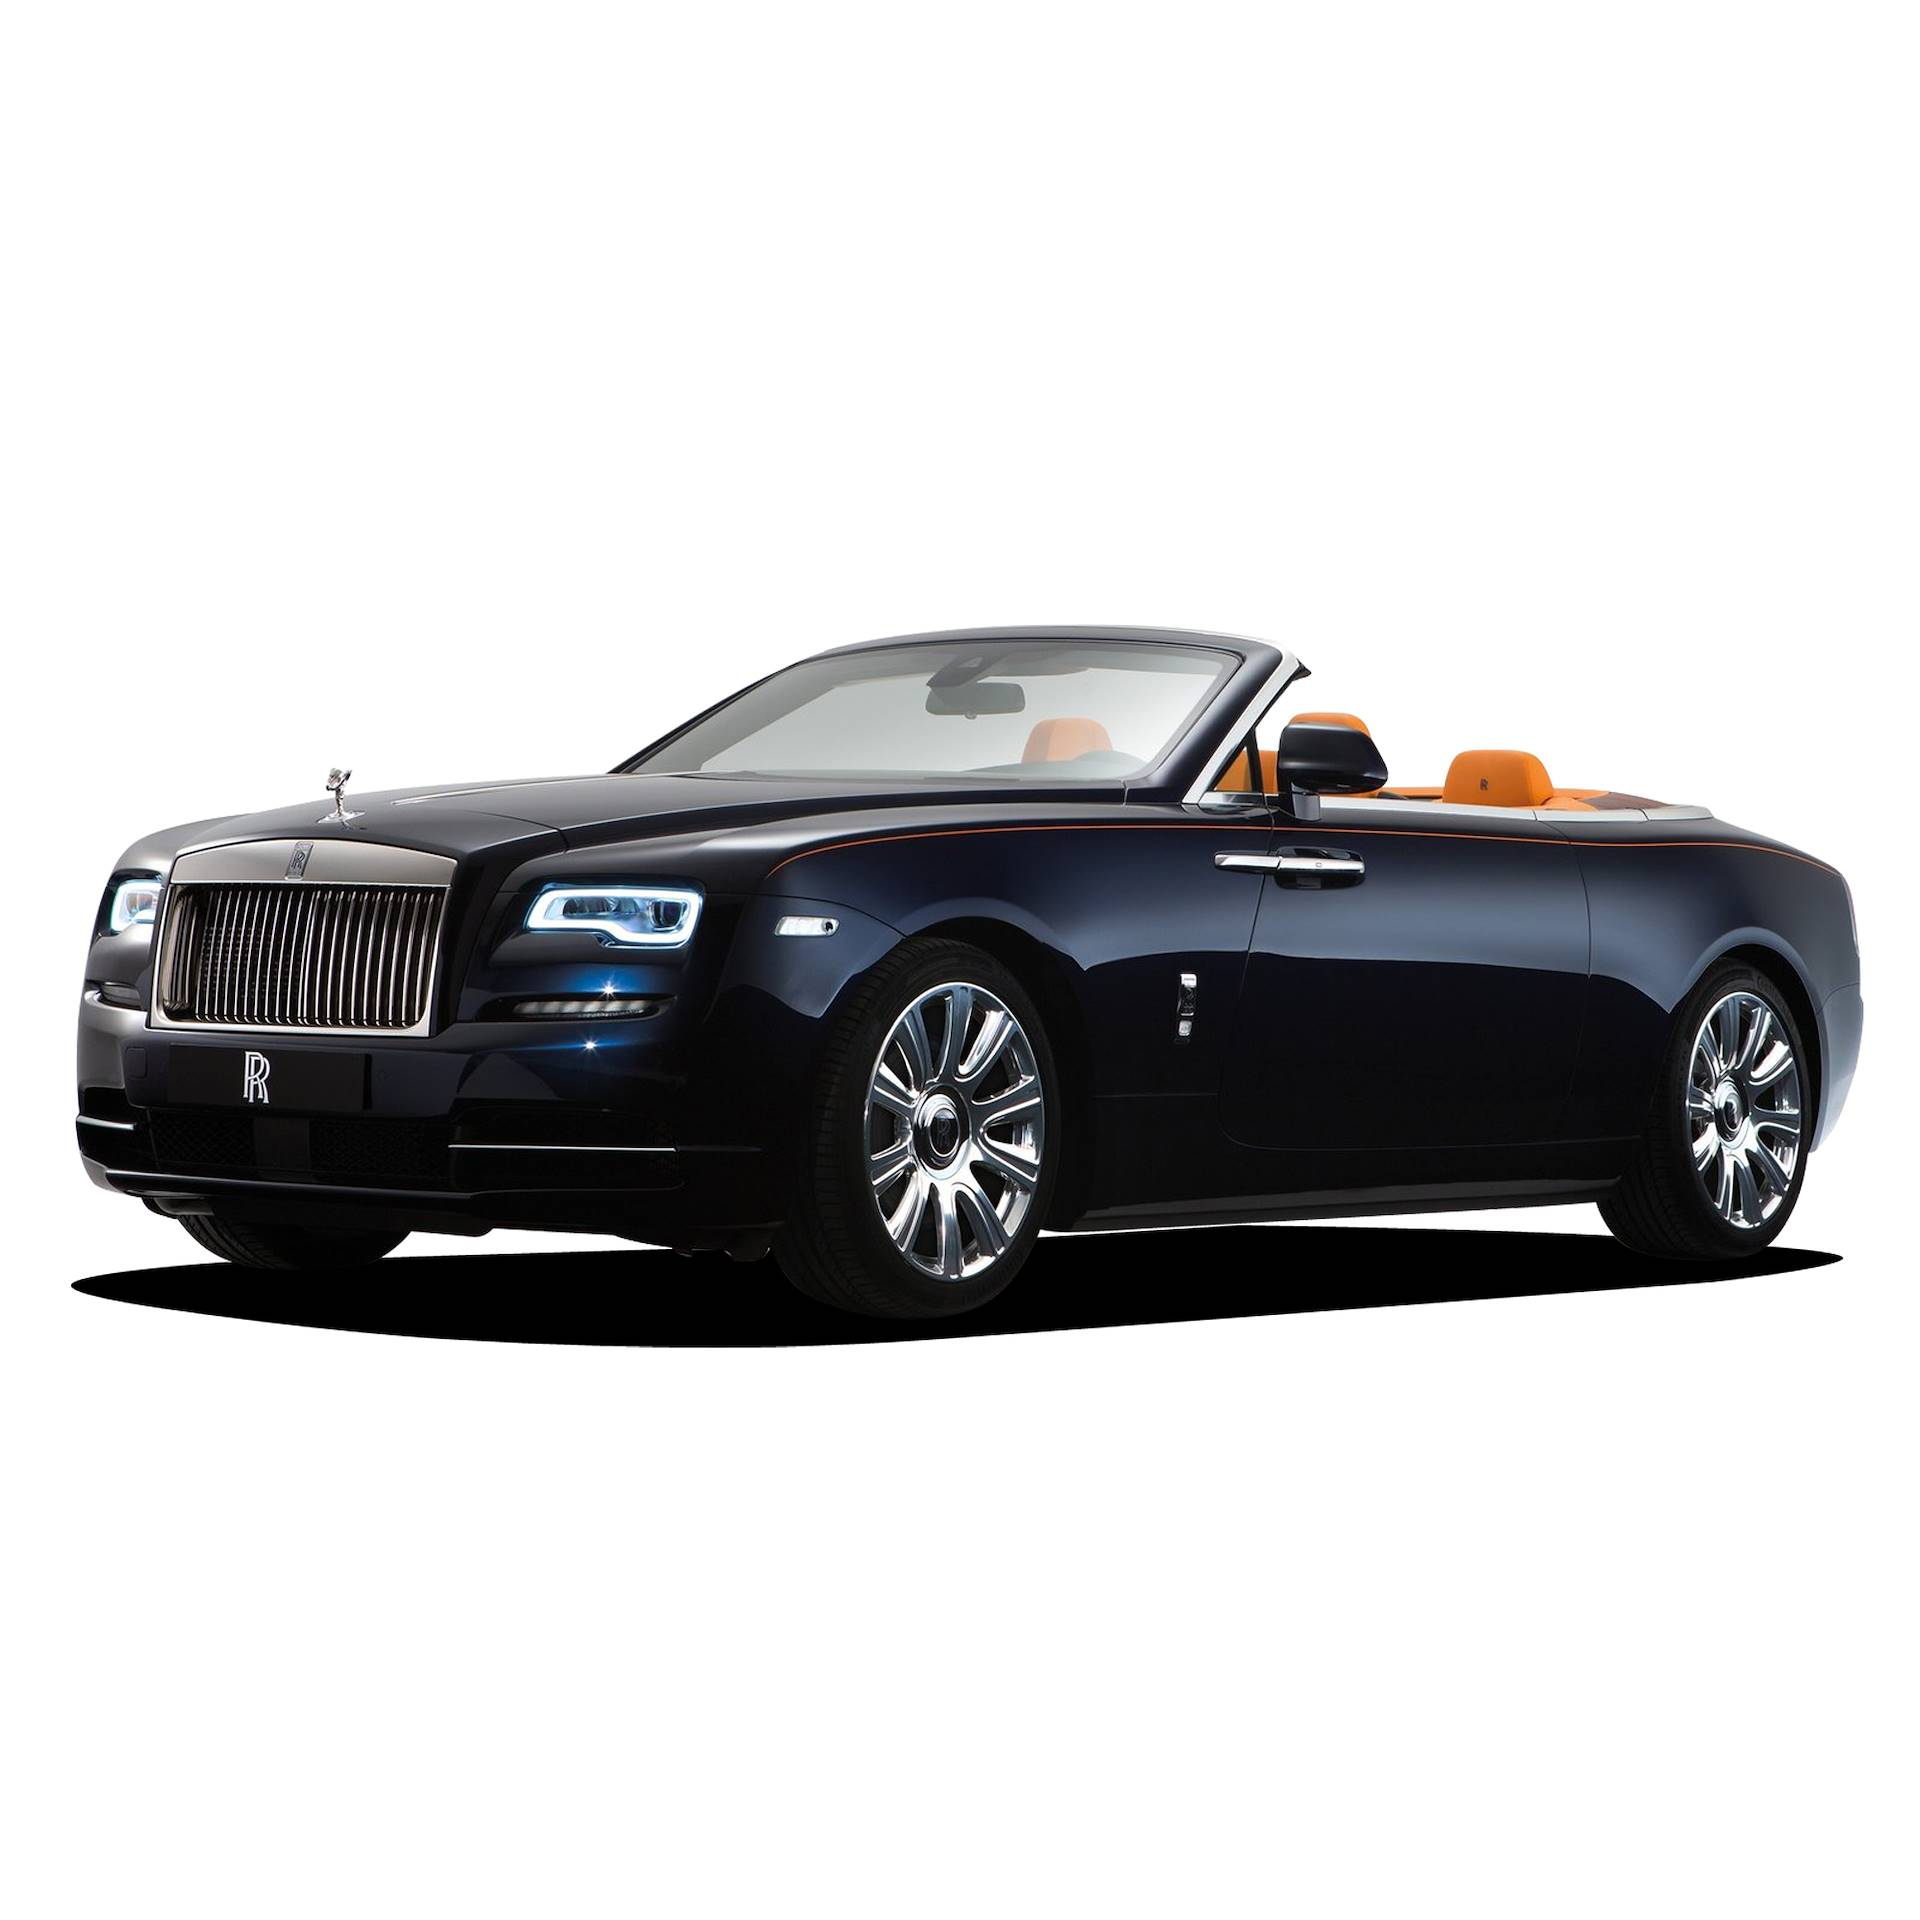 ROLLS ROYCE Dawn V12 Bi-Turbo 2015 -> 2018